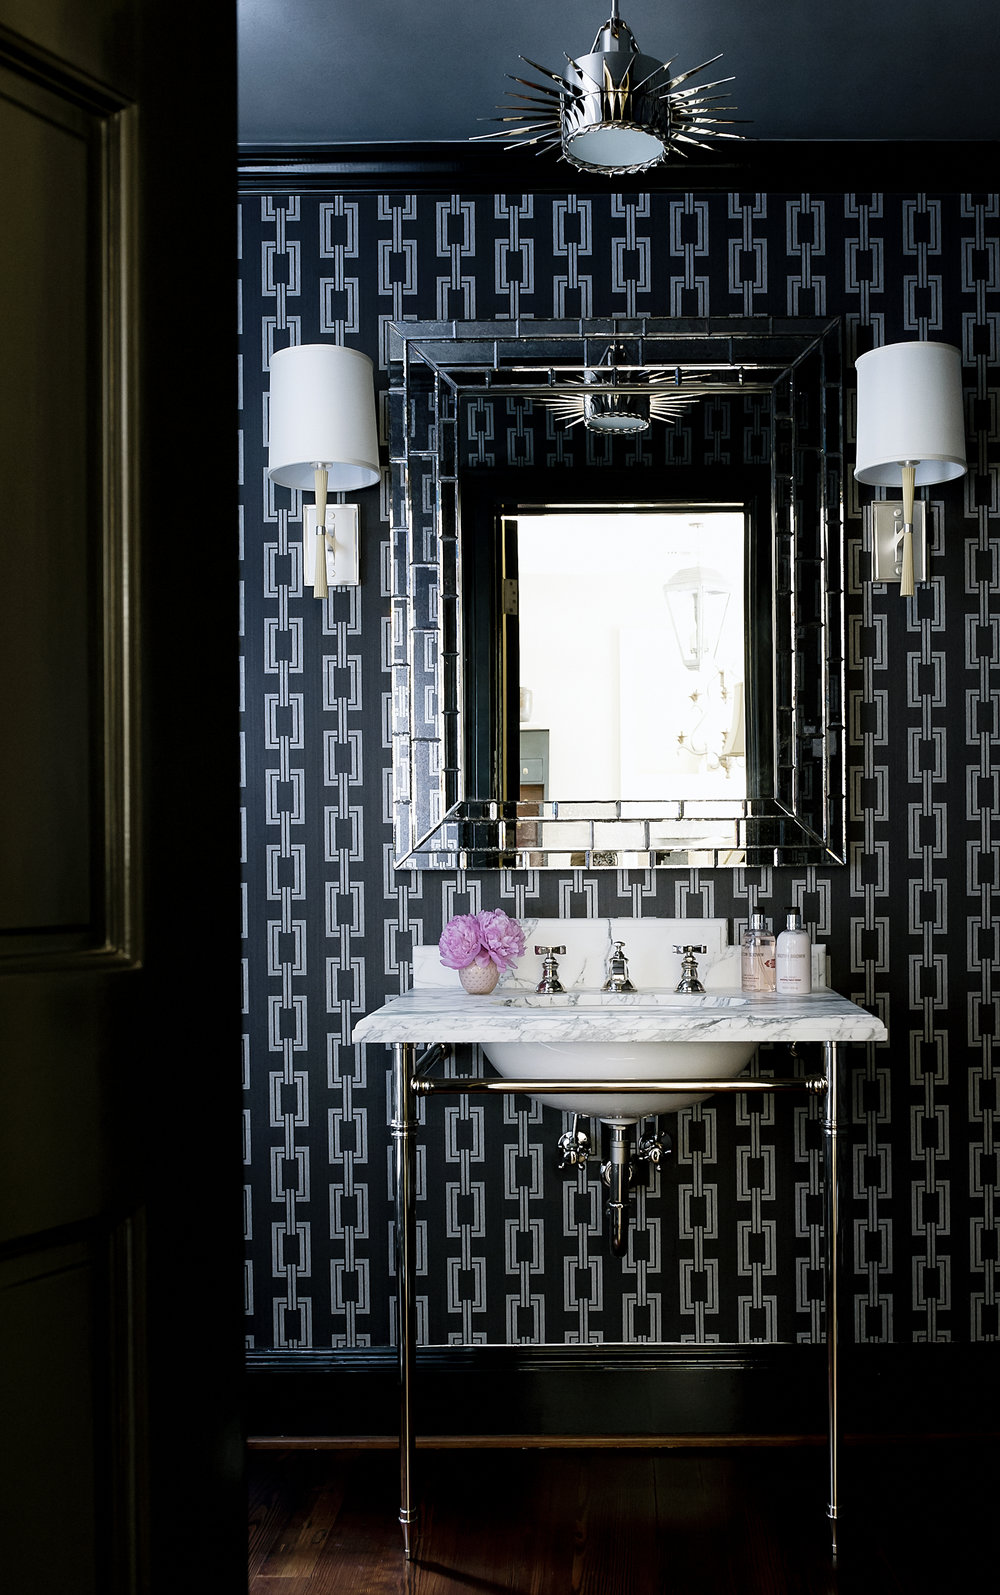 Now THAT'S a powder room sure to wow visitors.